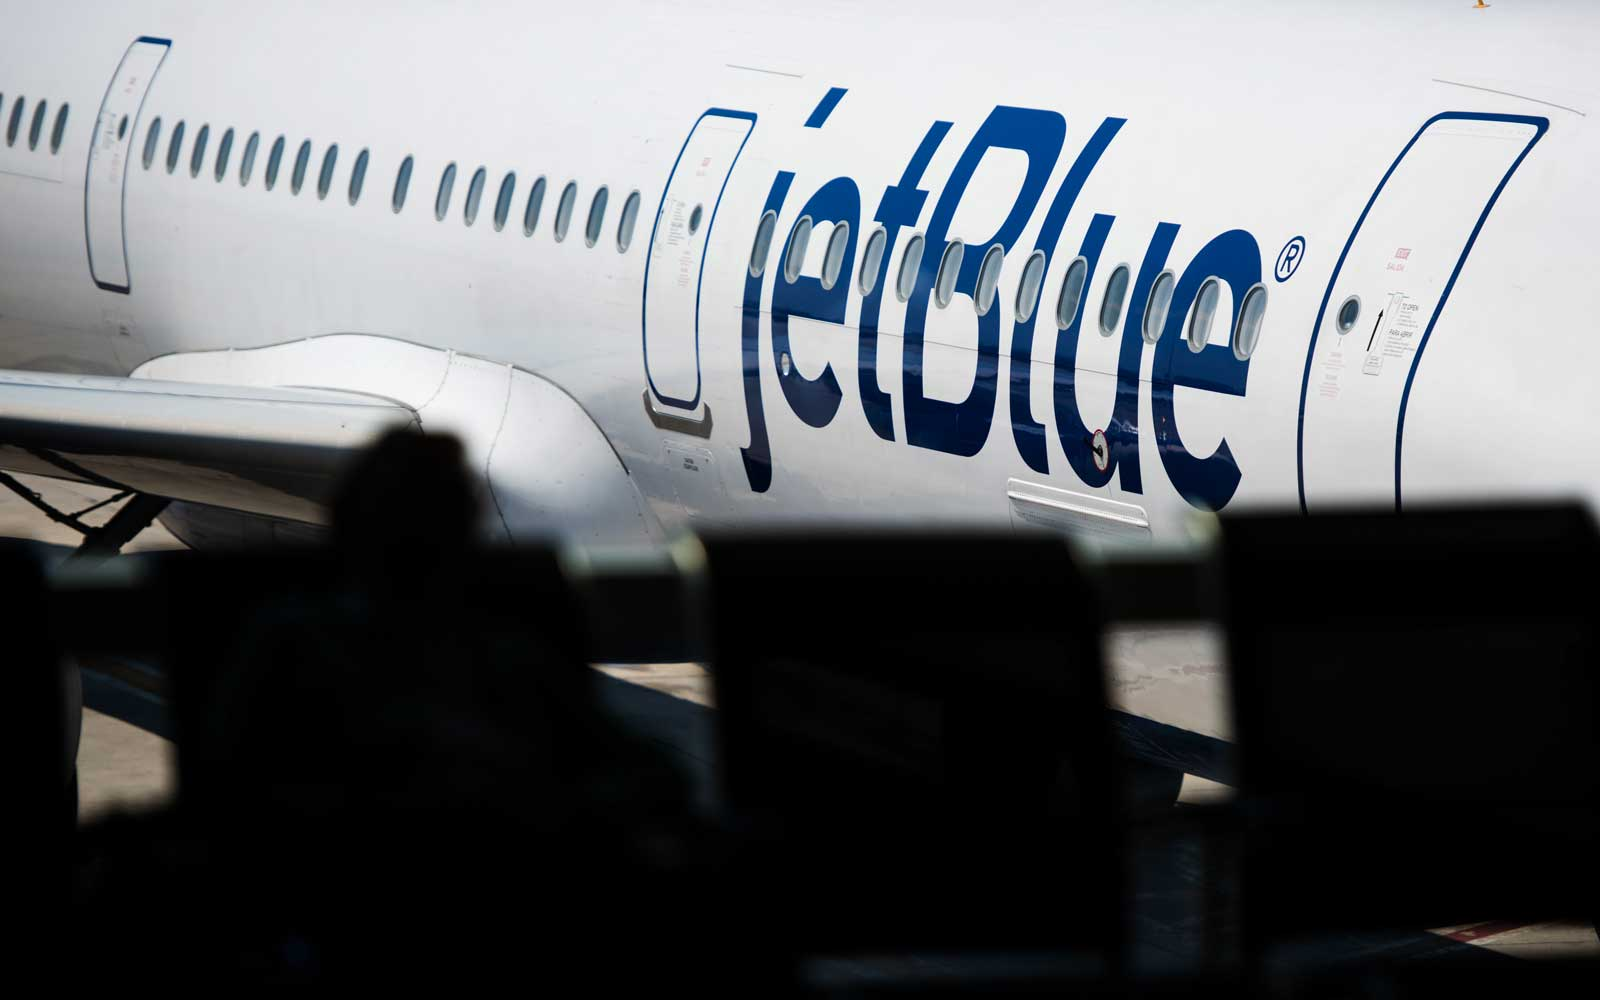 JetBlue at JFK Airport